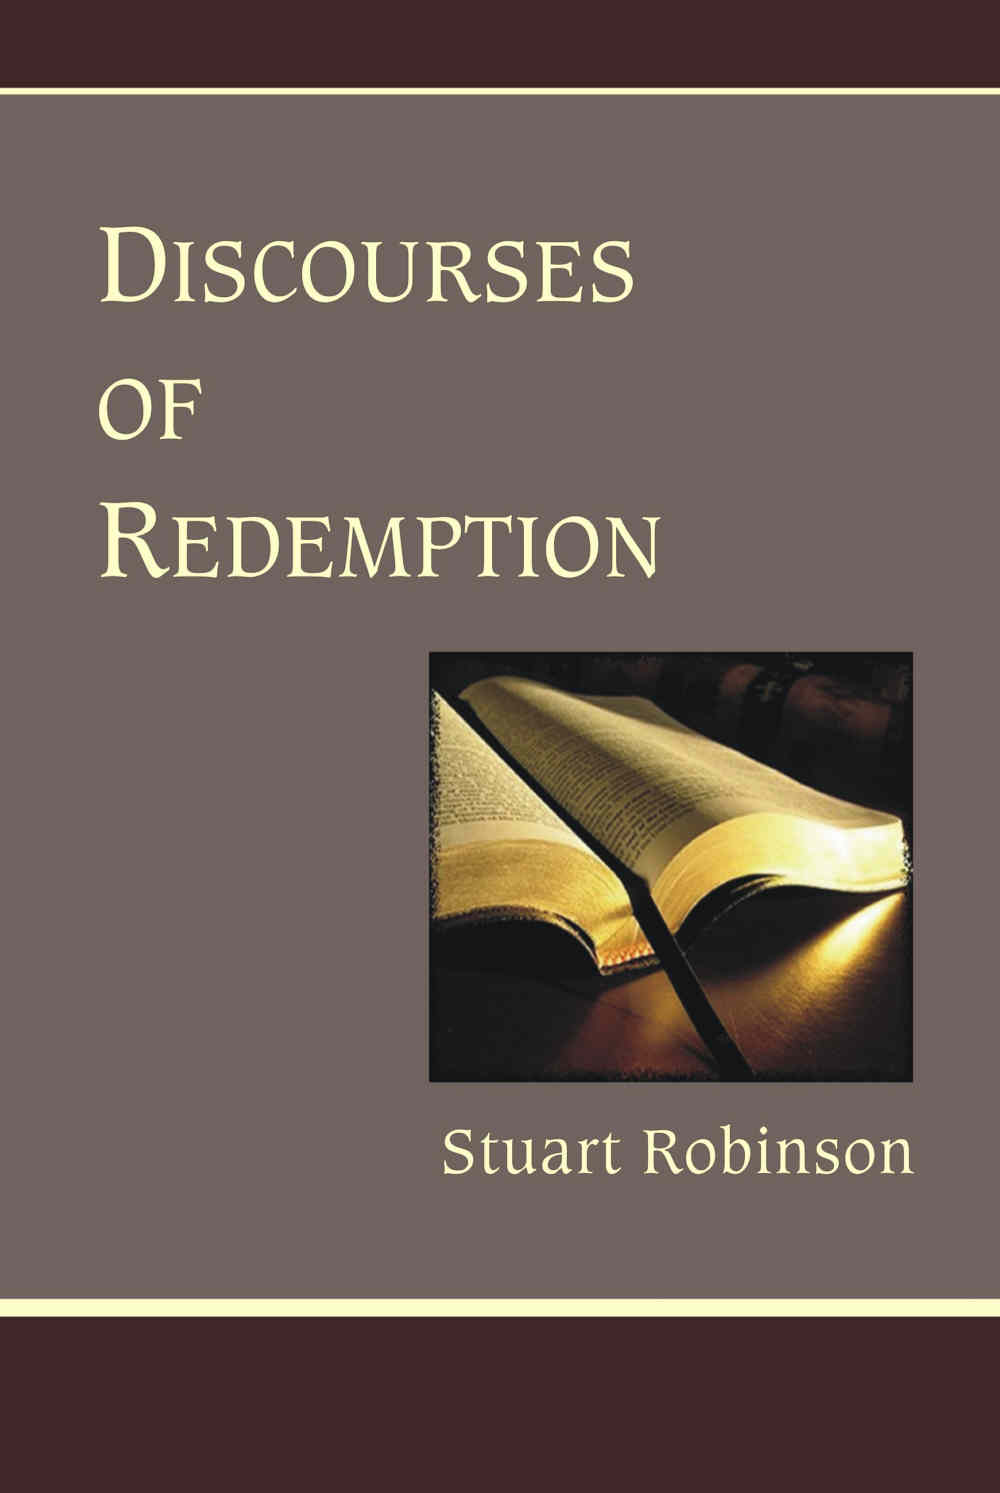 discourses_of_redemption